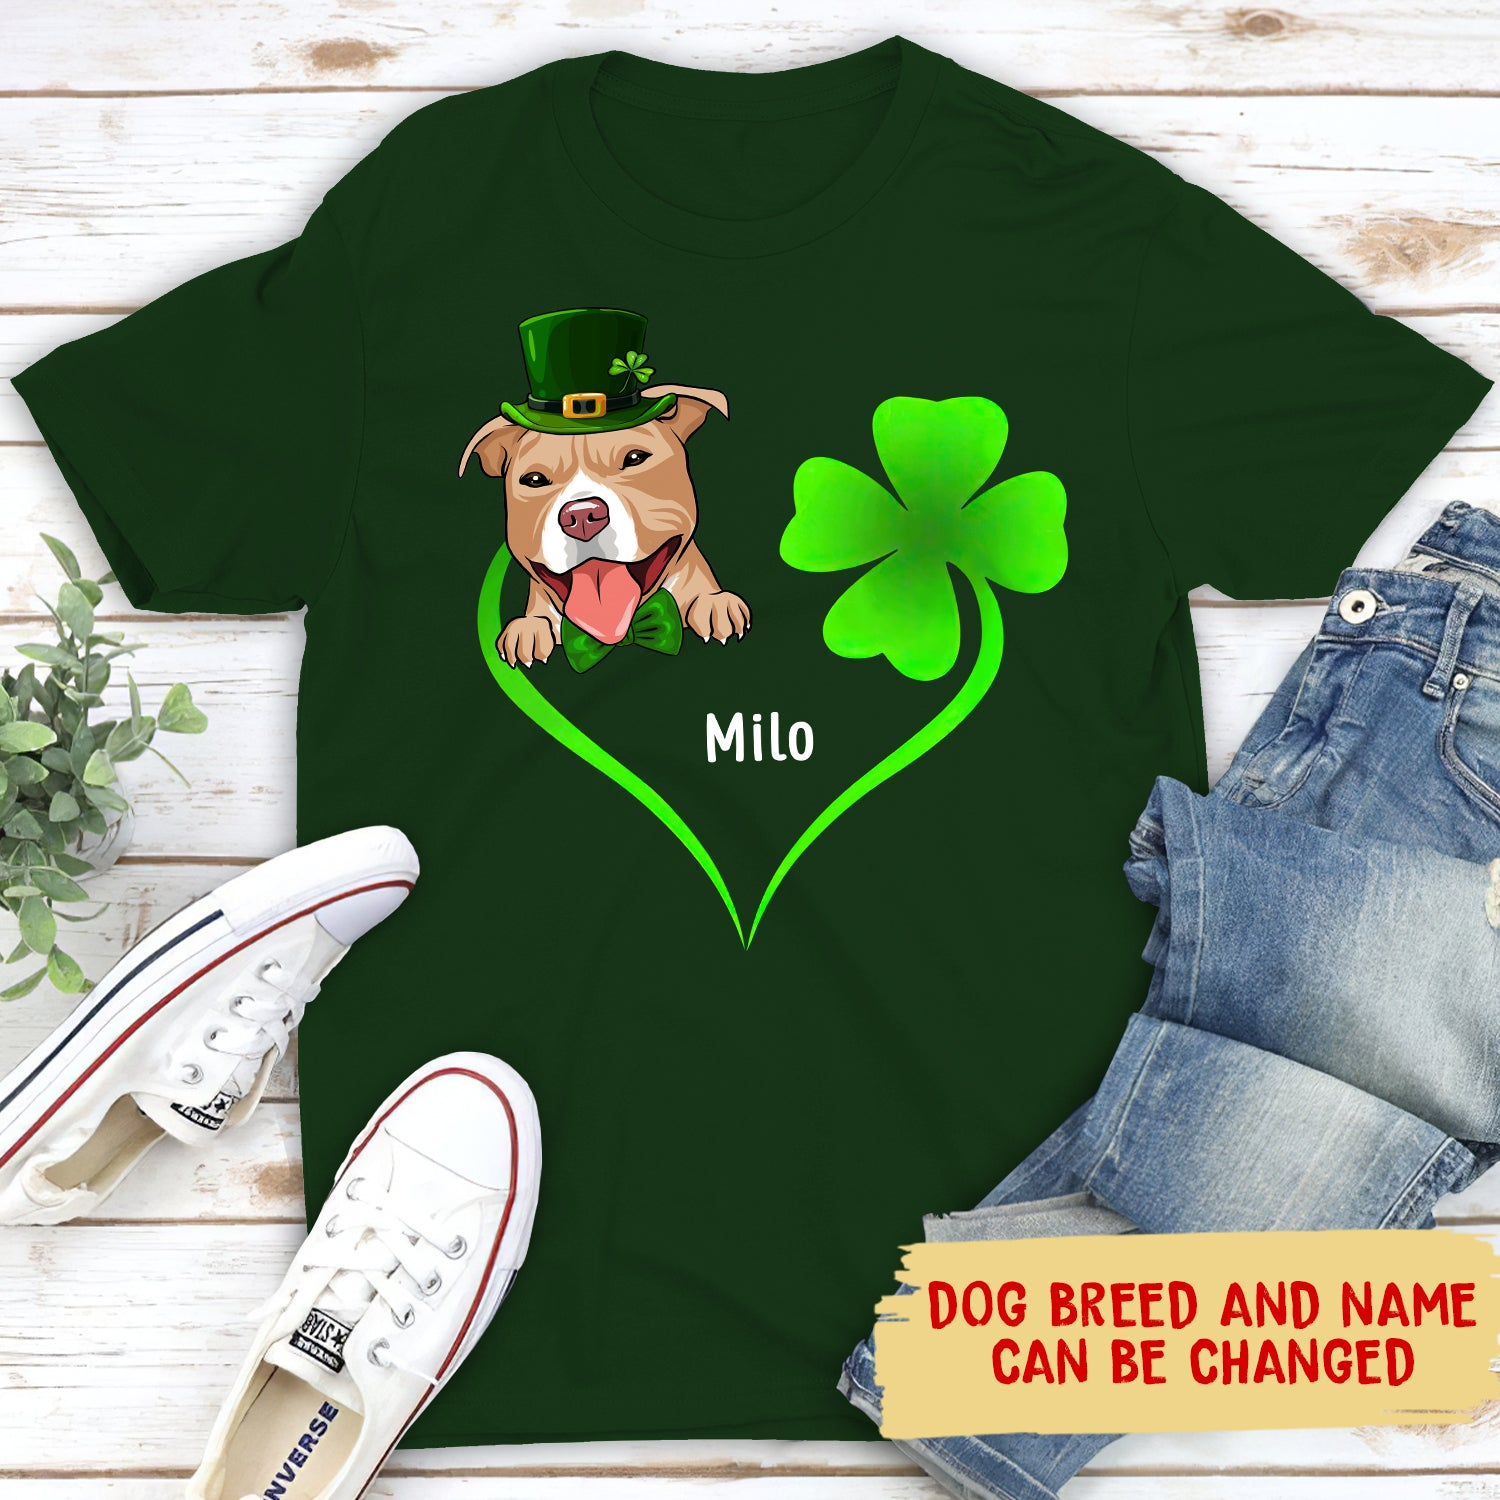 St. Patrick Dog Shirt - Personalized Custom Unisex T-shirt - Gifts For Dog Lovers